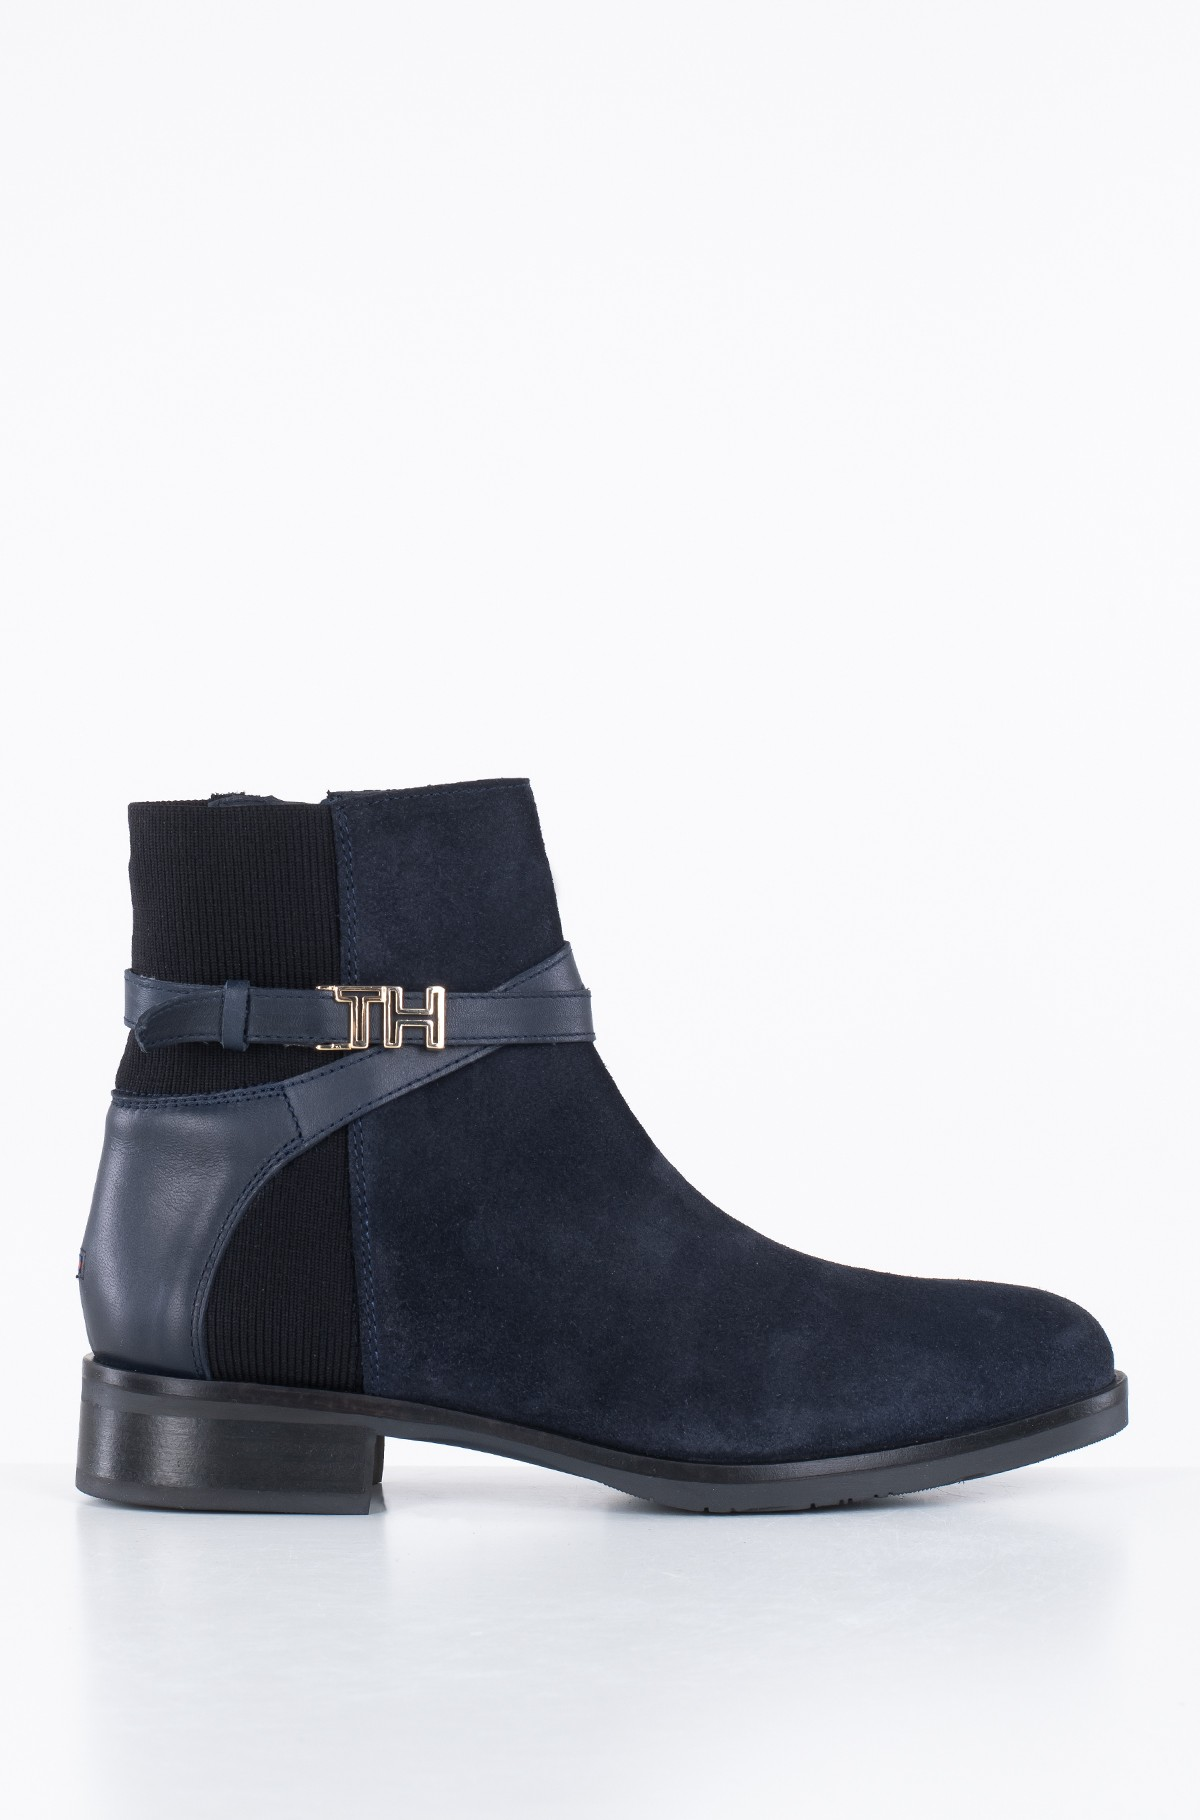 Ankle boots TH HARDWARE SUEDE FLAT BOOTIE-full-1